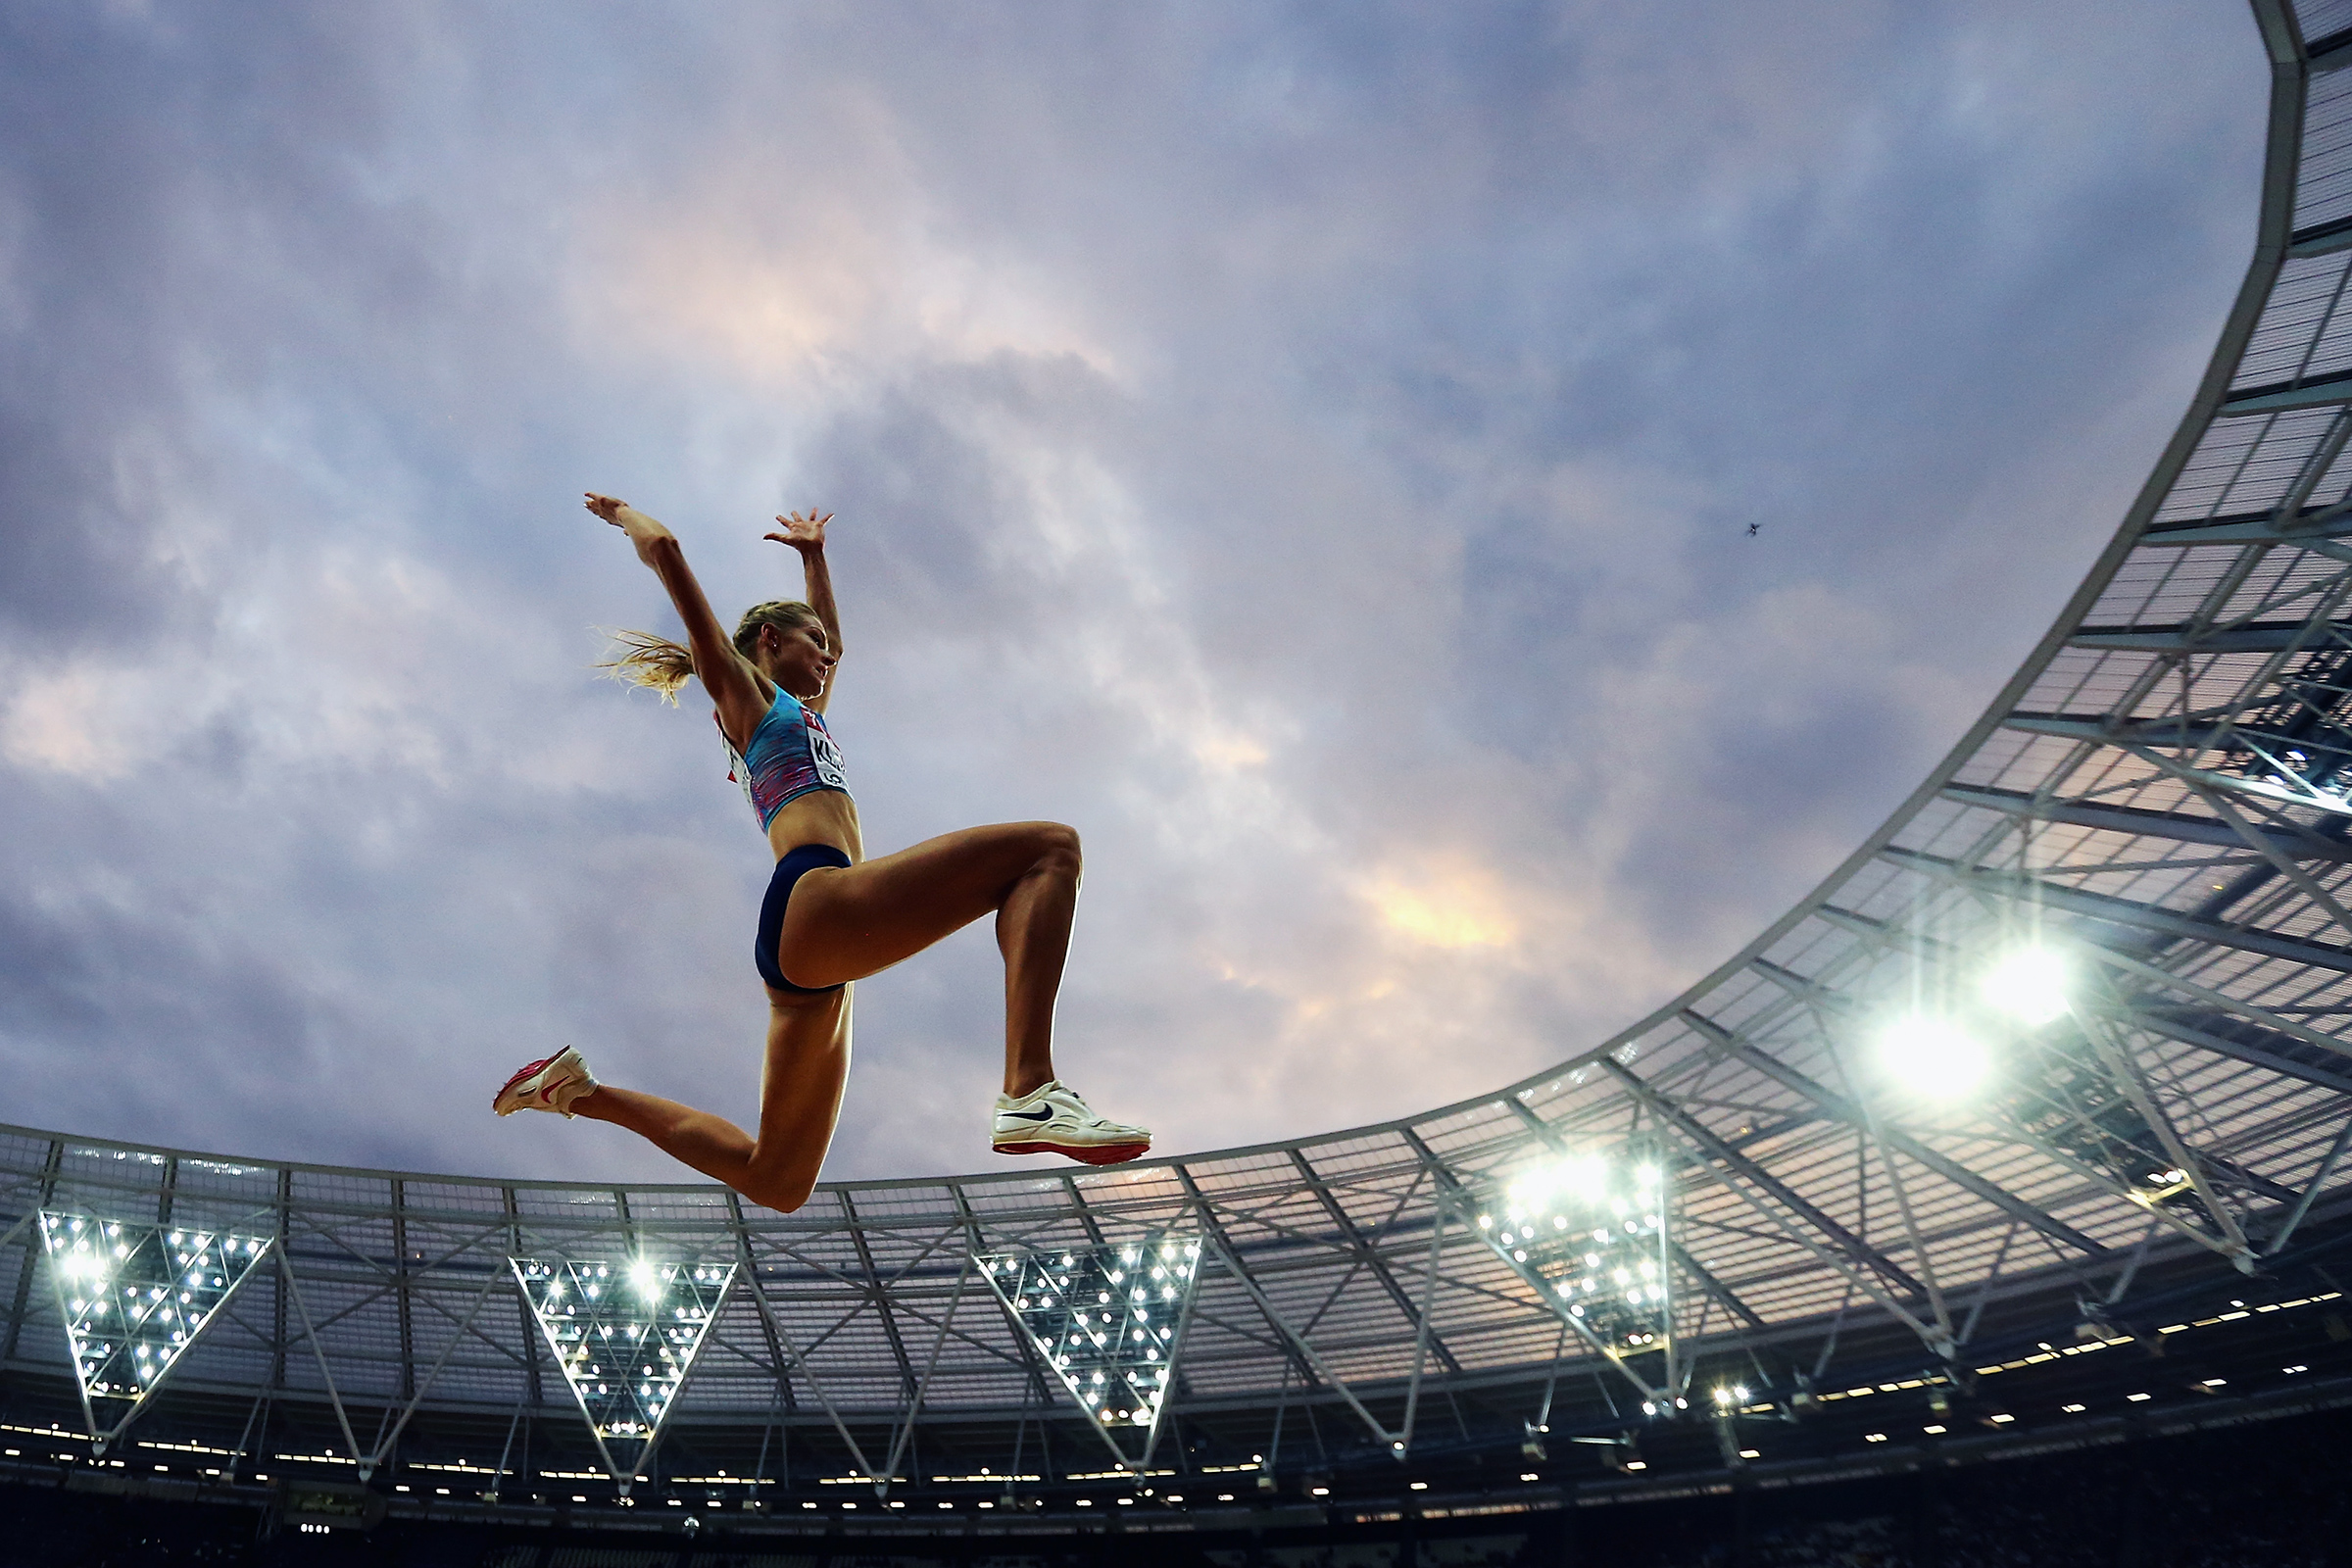 Darya Klishina of the Authorised Neutral Athletes, competes in the Women's Long Jump final during day eight of the 16th IAAF World Athletics Championships London 2017 at The London Stadium on August 11, 2017 in London, United Kingdom.